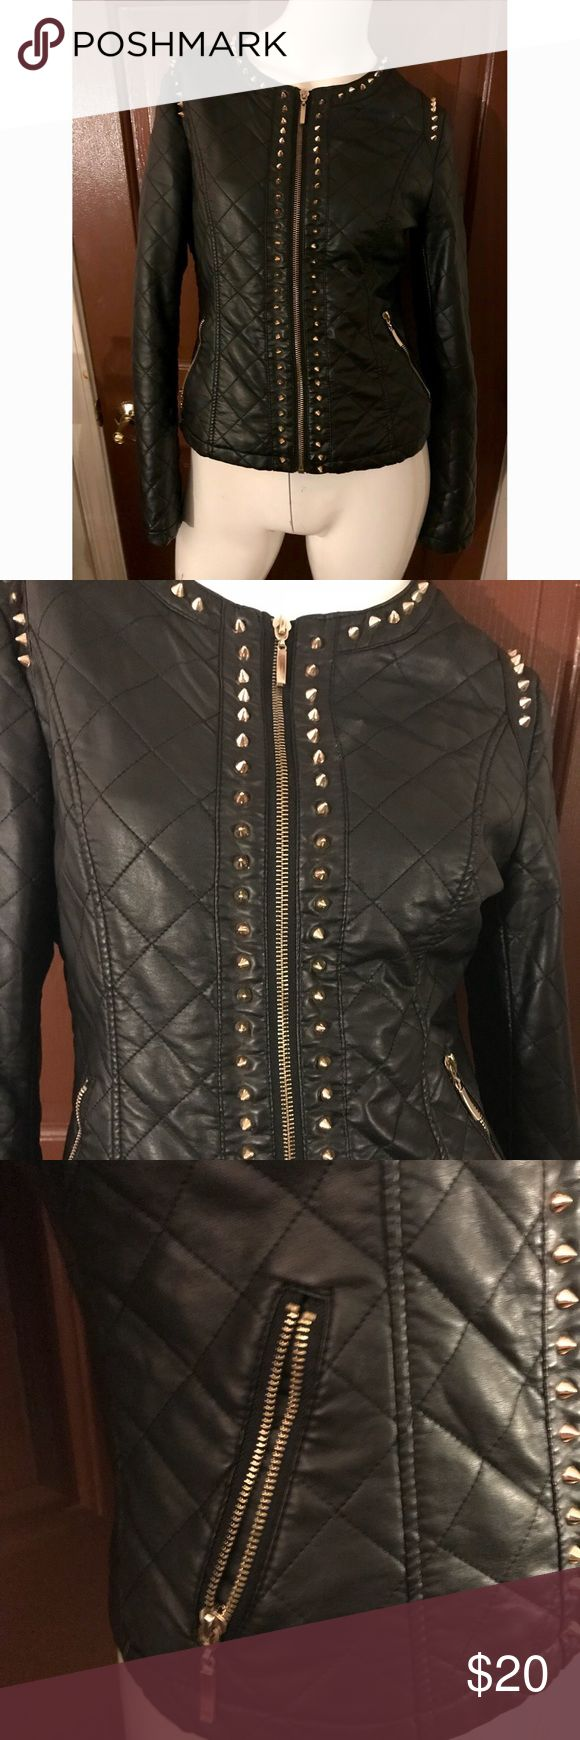 Forever 21 Black Faux Leather Jacket In excellent condition. Golf Spiked Faux Leather. Zip up. Two pockets. Forever 21 Jackets & Coats